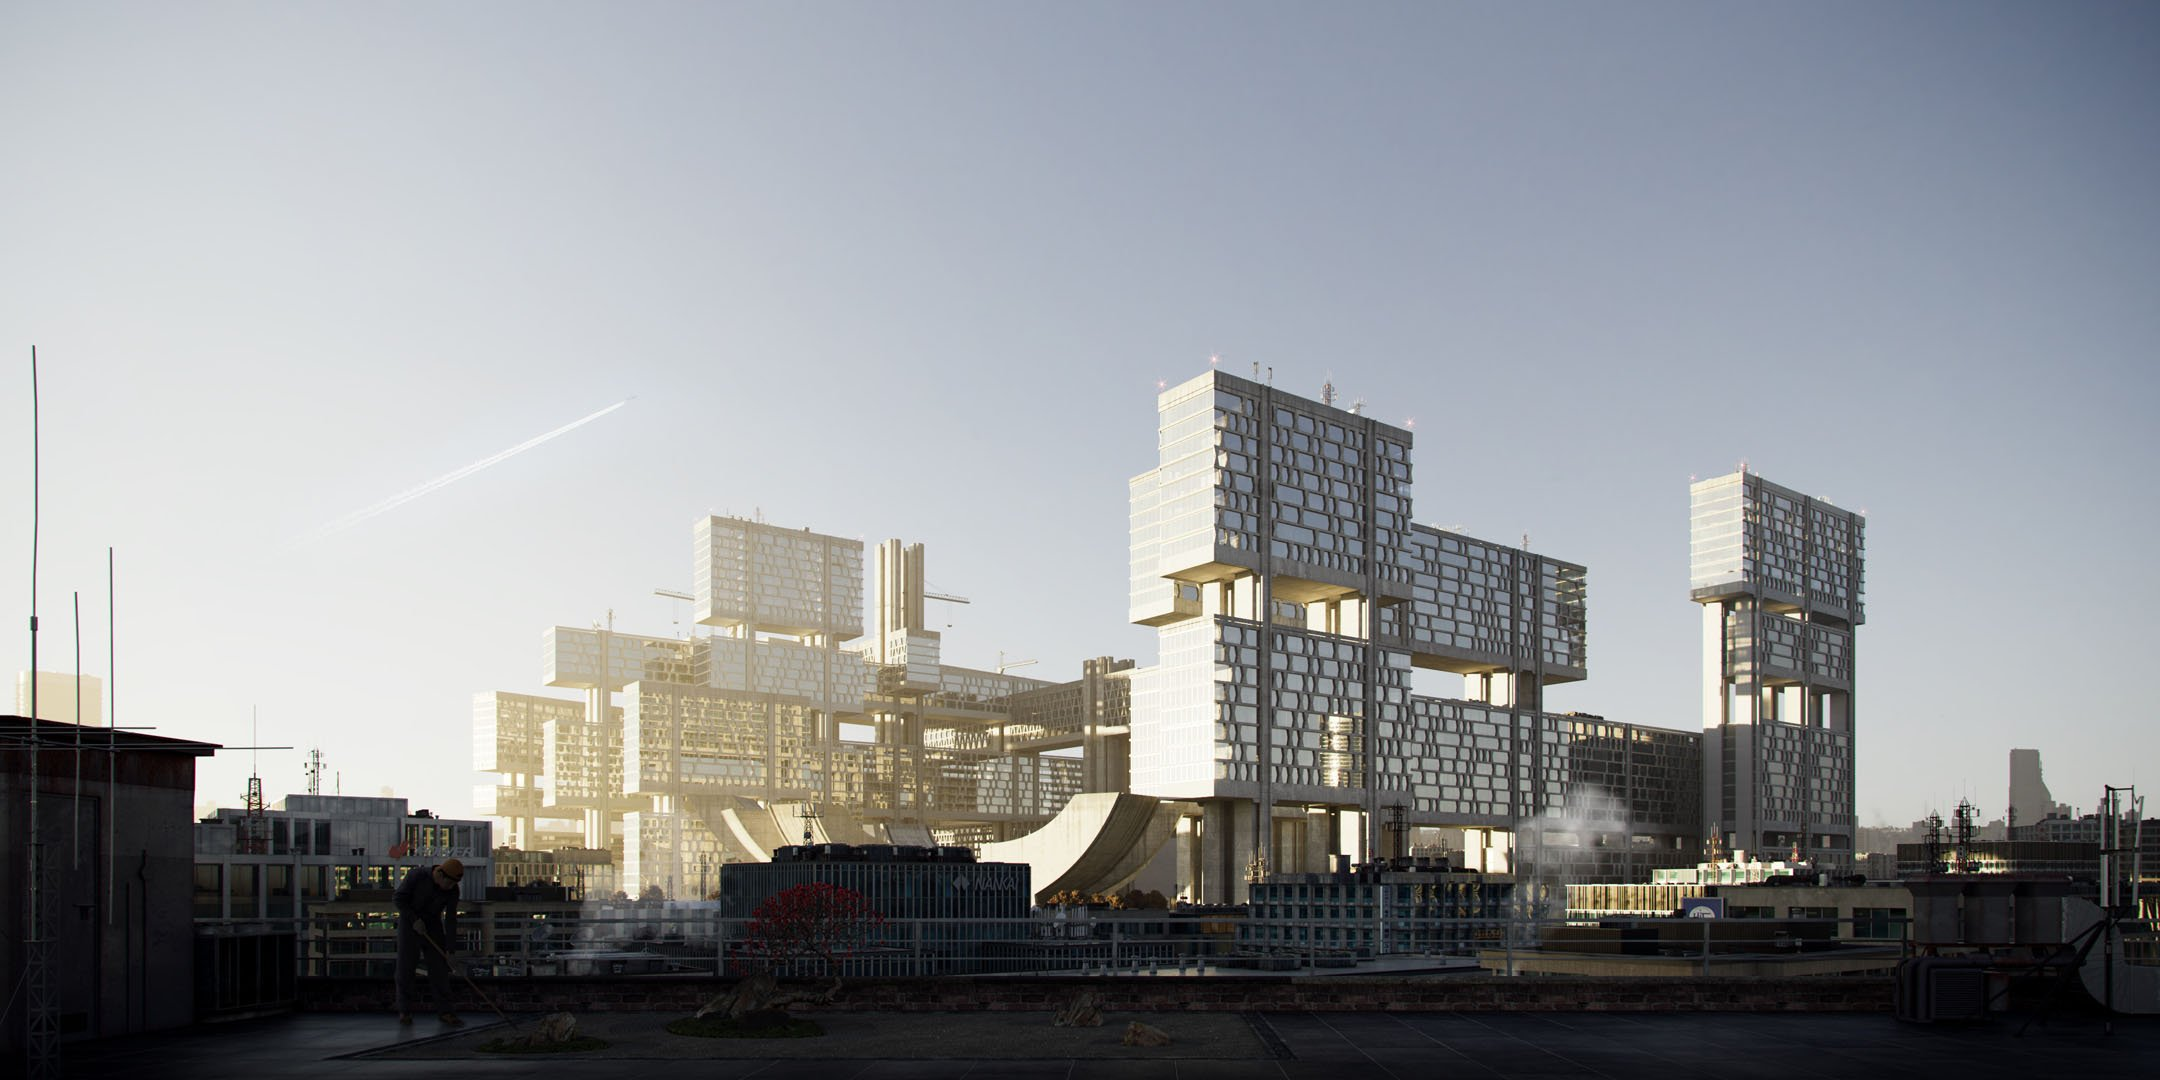 CG Design Visualization for an Architectural Complex